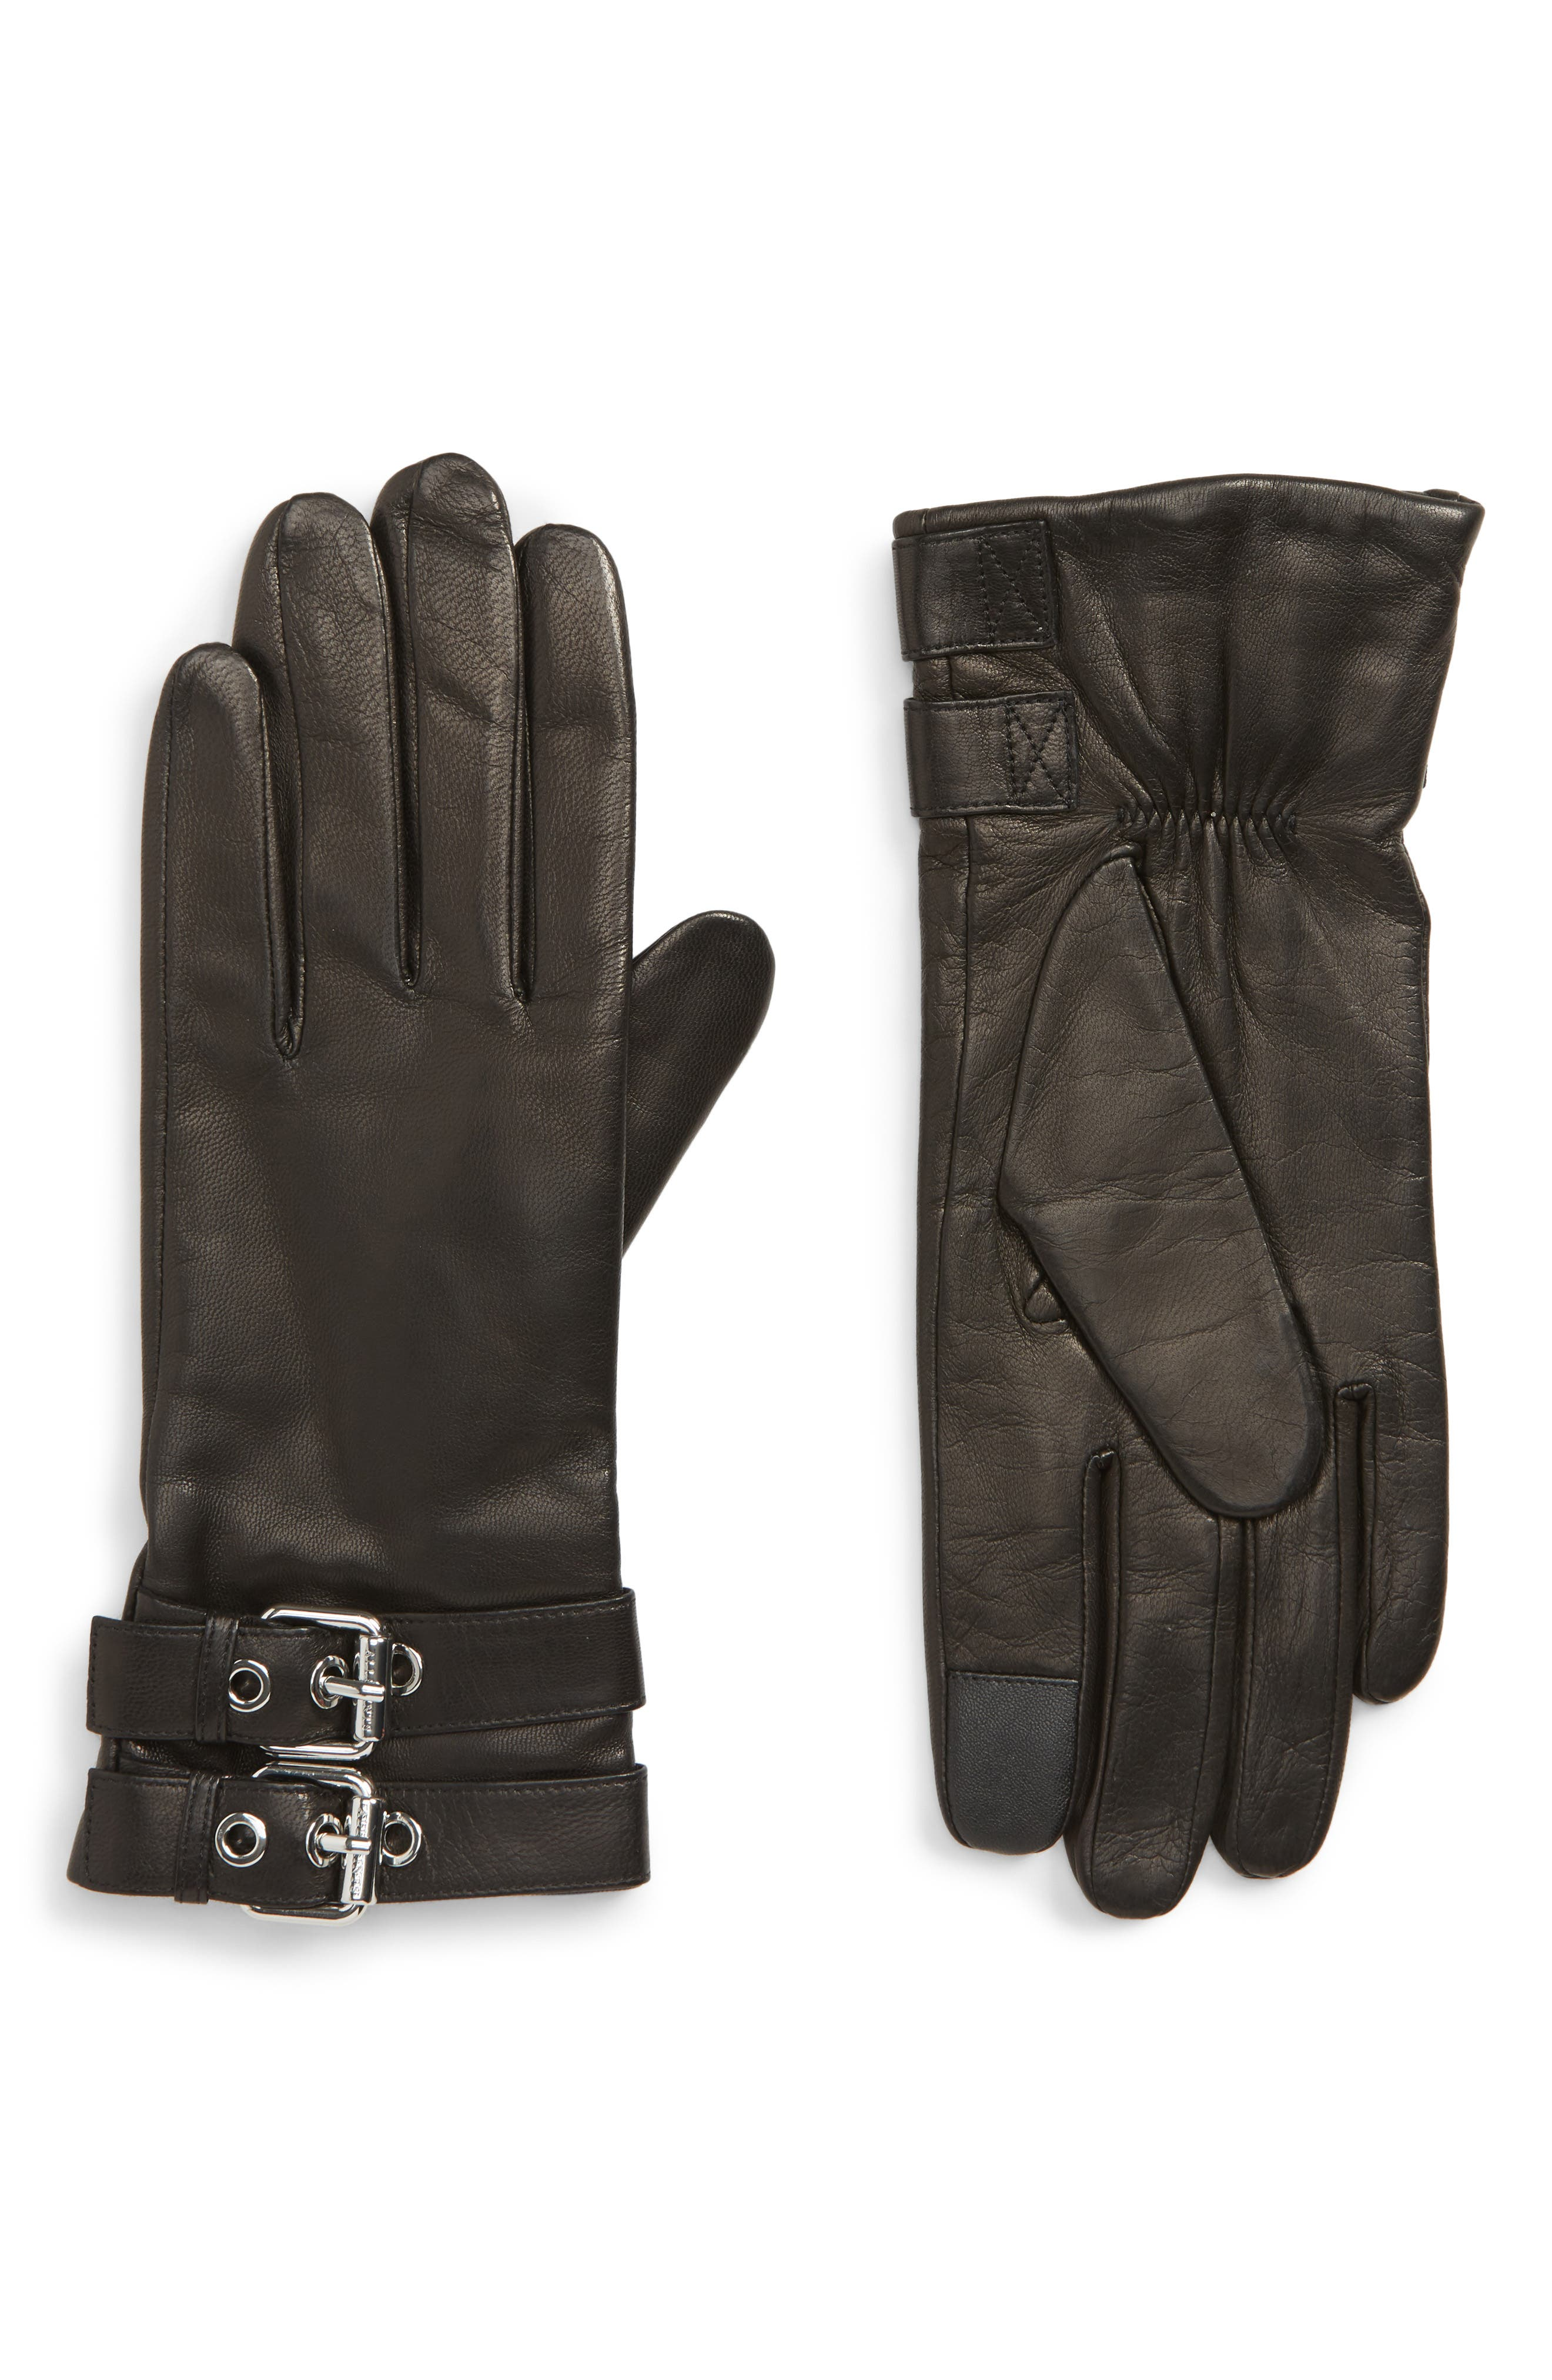 Buckled Leather Gloves,                         Main,                         color, BLACK/ SHINY NICKEL